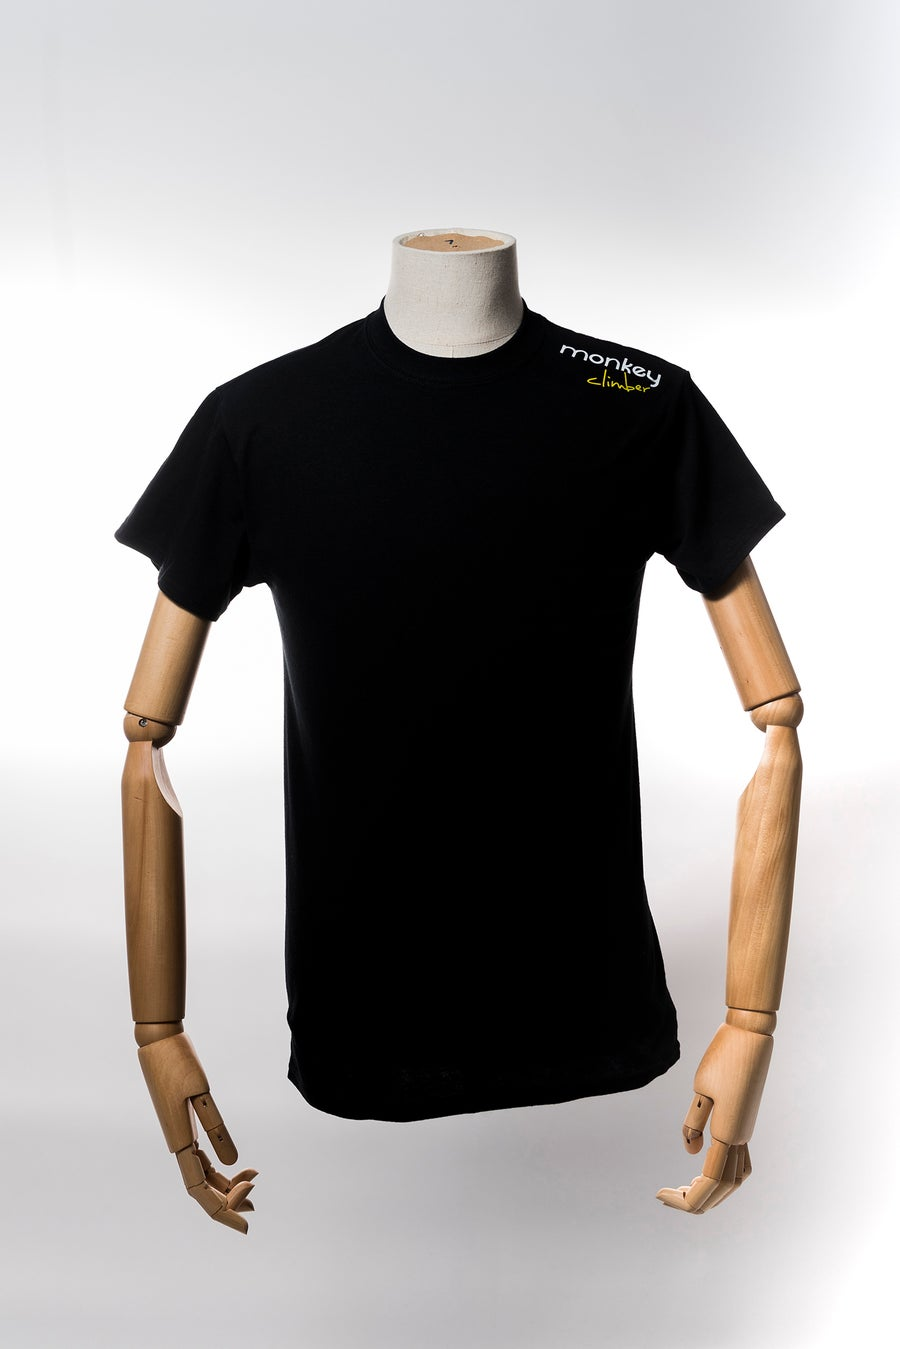 Image of Monkey Climber Streetwise shirt I Black